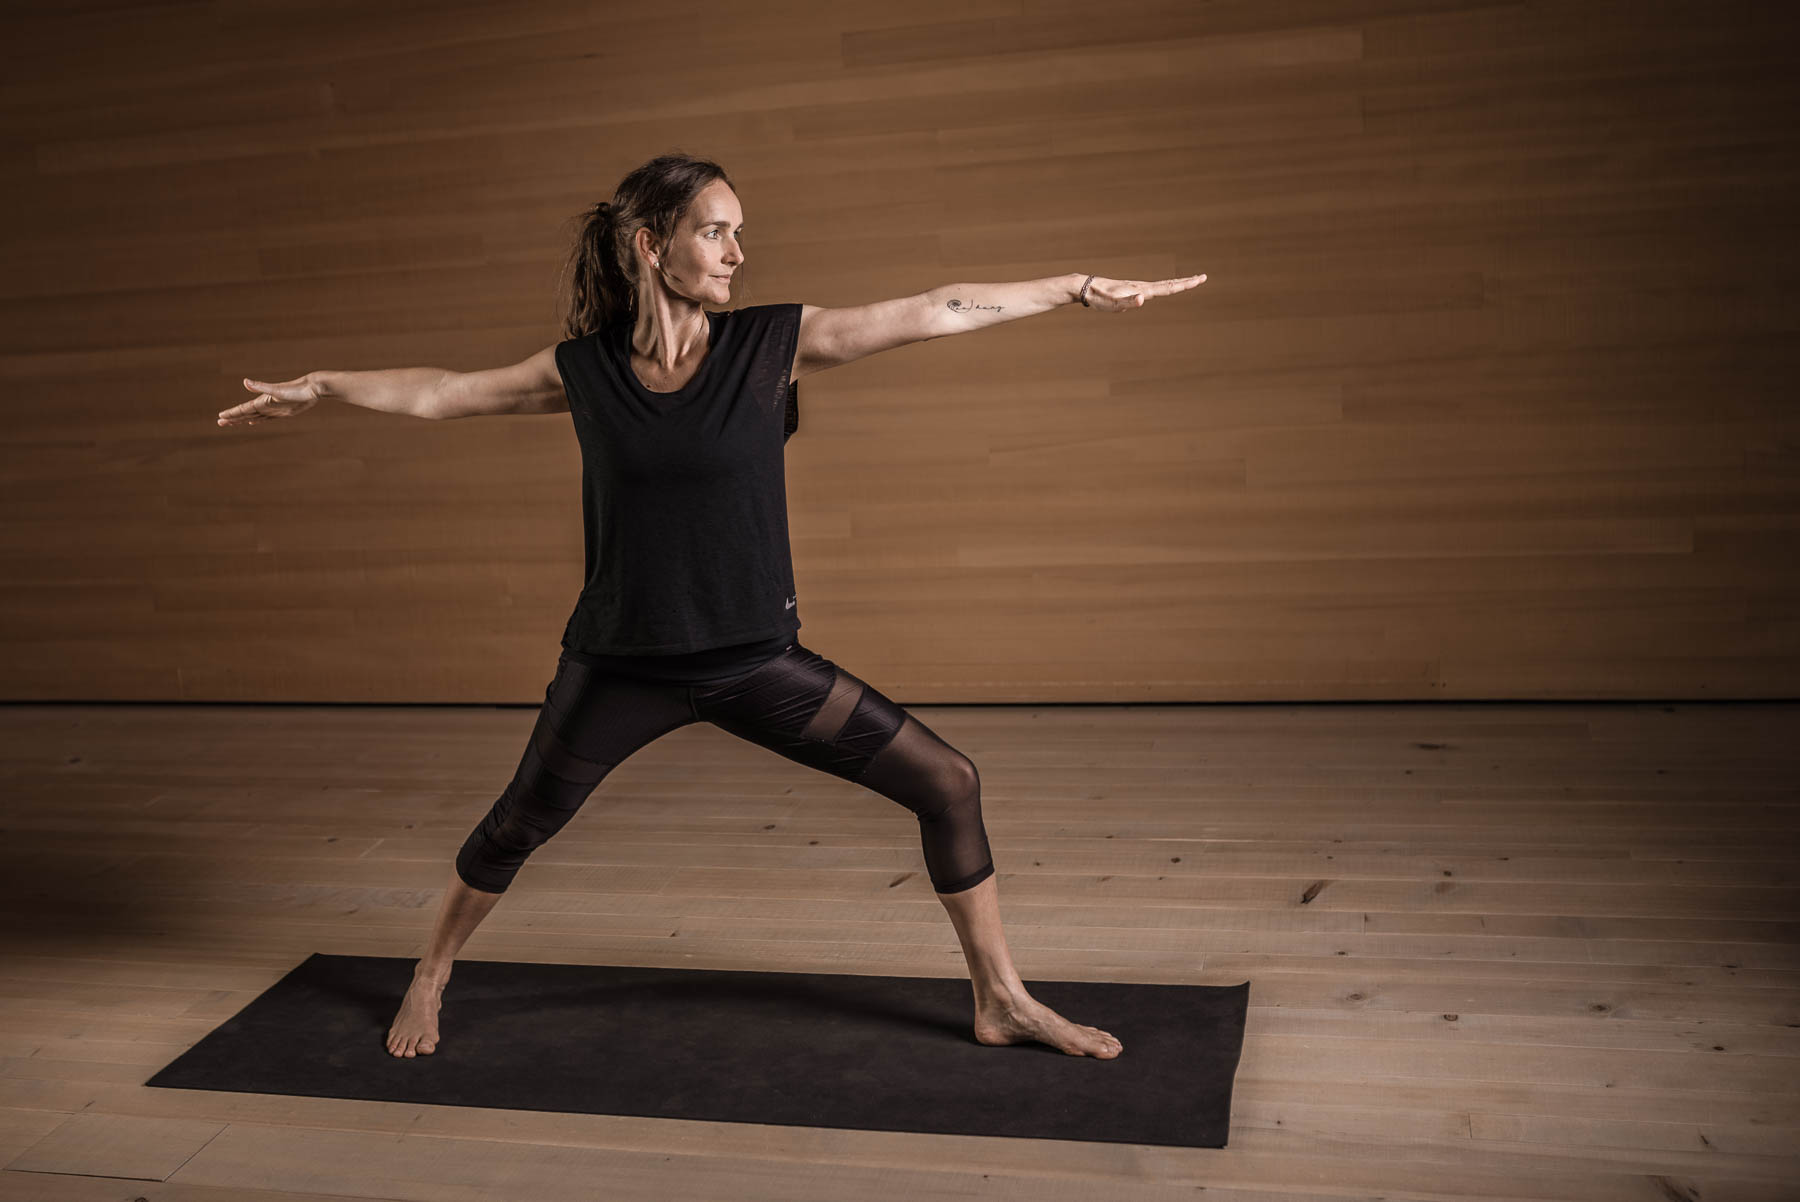 Claudia-Yoga-WEB-70.jpg